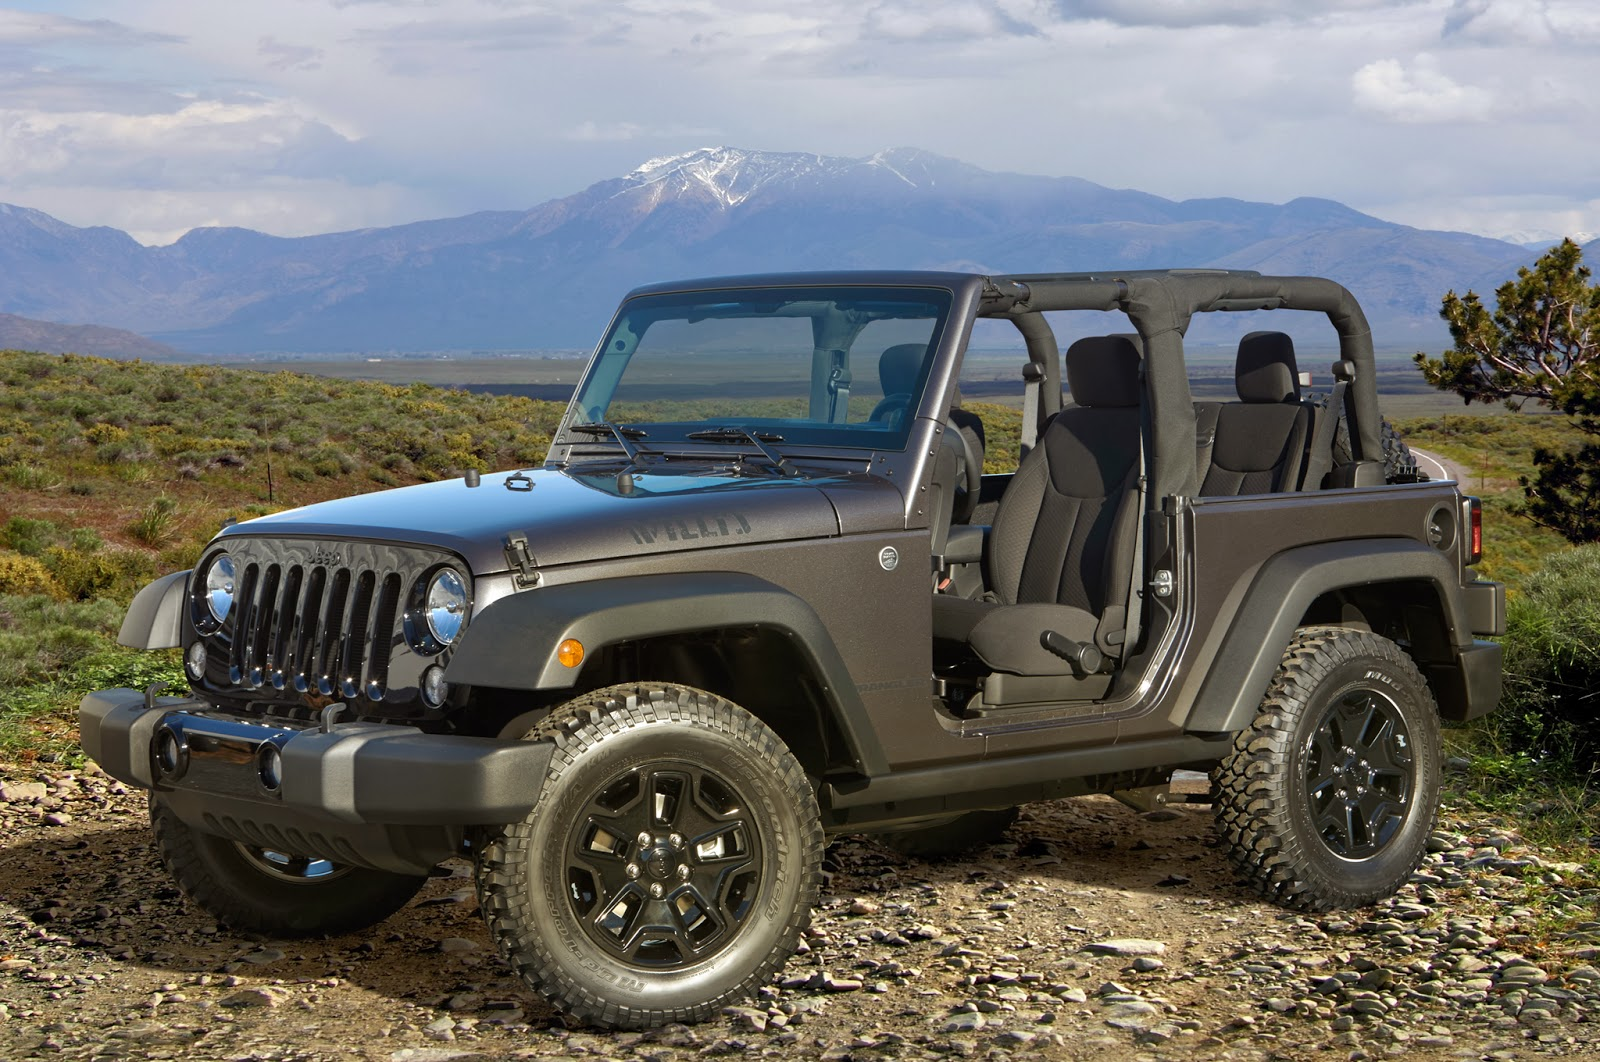 2014 jeep wrangler willys wheeler edition review auto review 2014. Black Bedroom Furniture Sets. Home Design Ideas